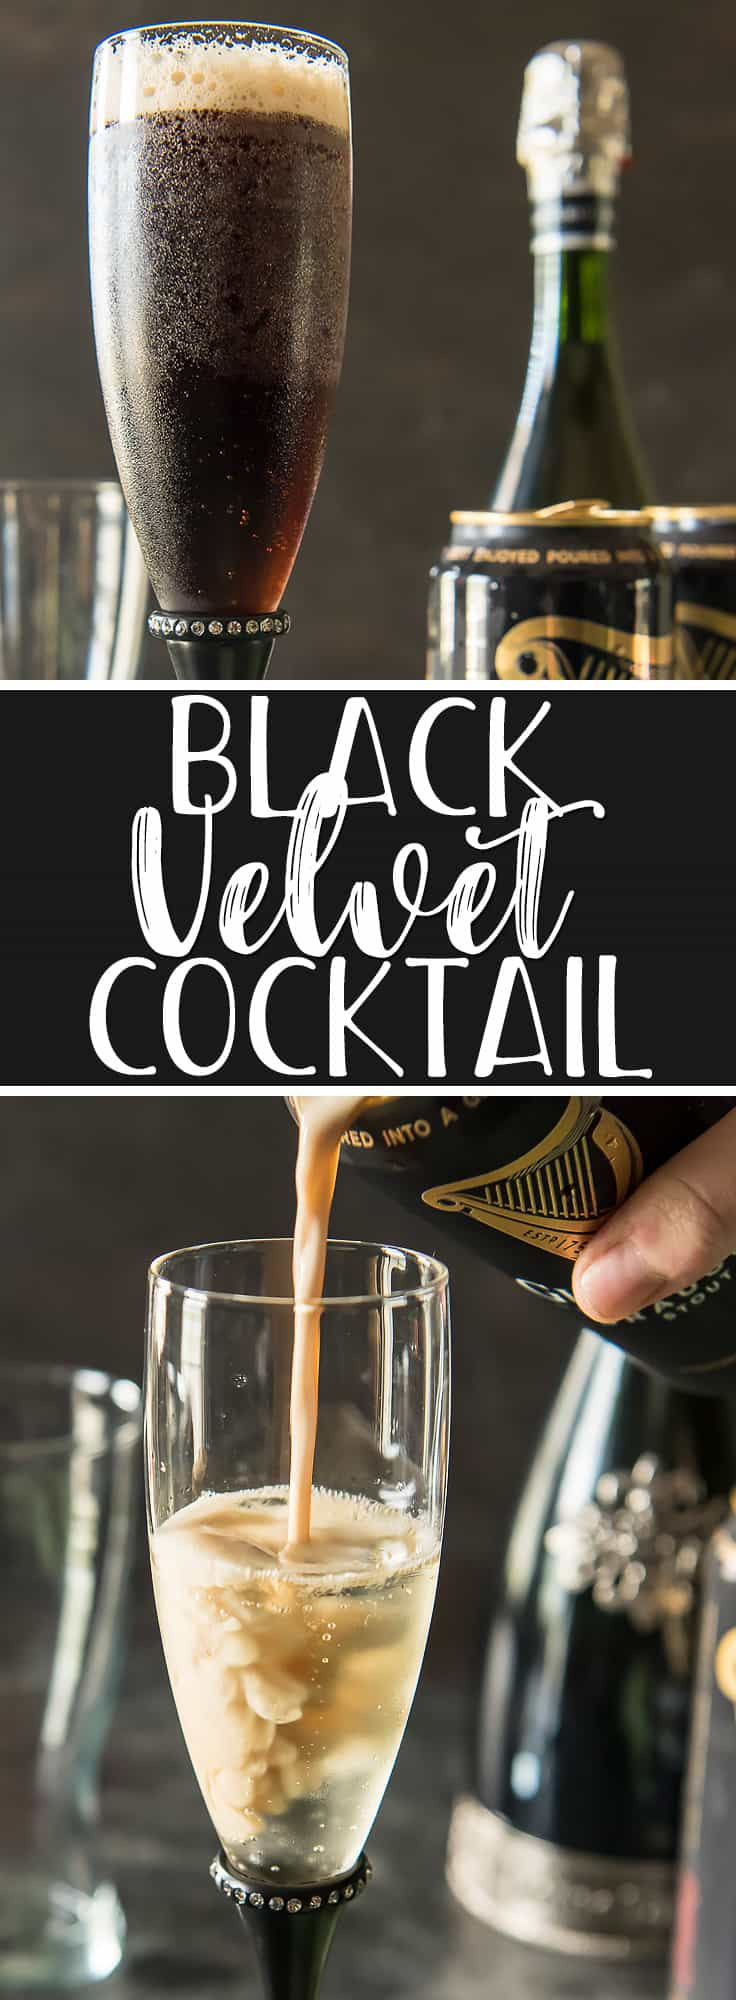 The Black Velvet cocktail recipe is a classic Irish sipper that you'll be sipping with your pinky up. This delightful even blend of Guinness stout beer and sparkling champagne mellows out the flavors of both ingredients, making beer and bubbly haters into beer and bubbly lovers!